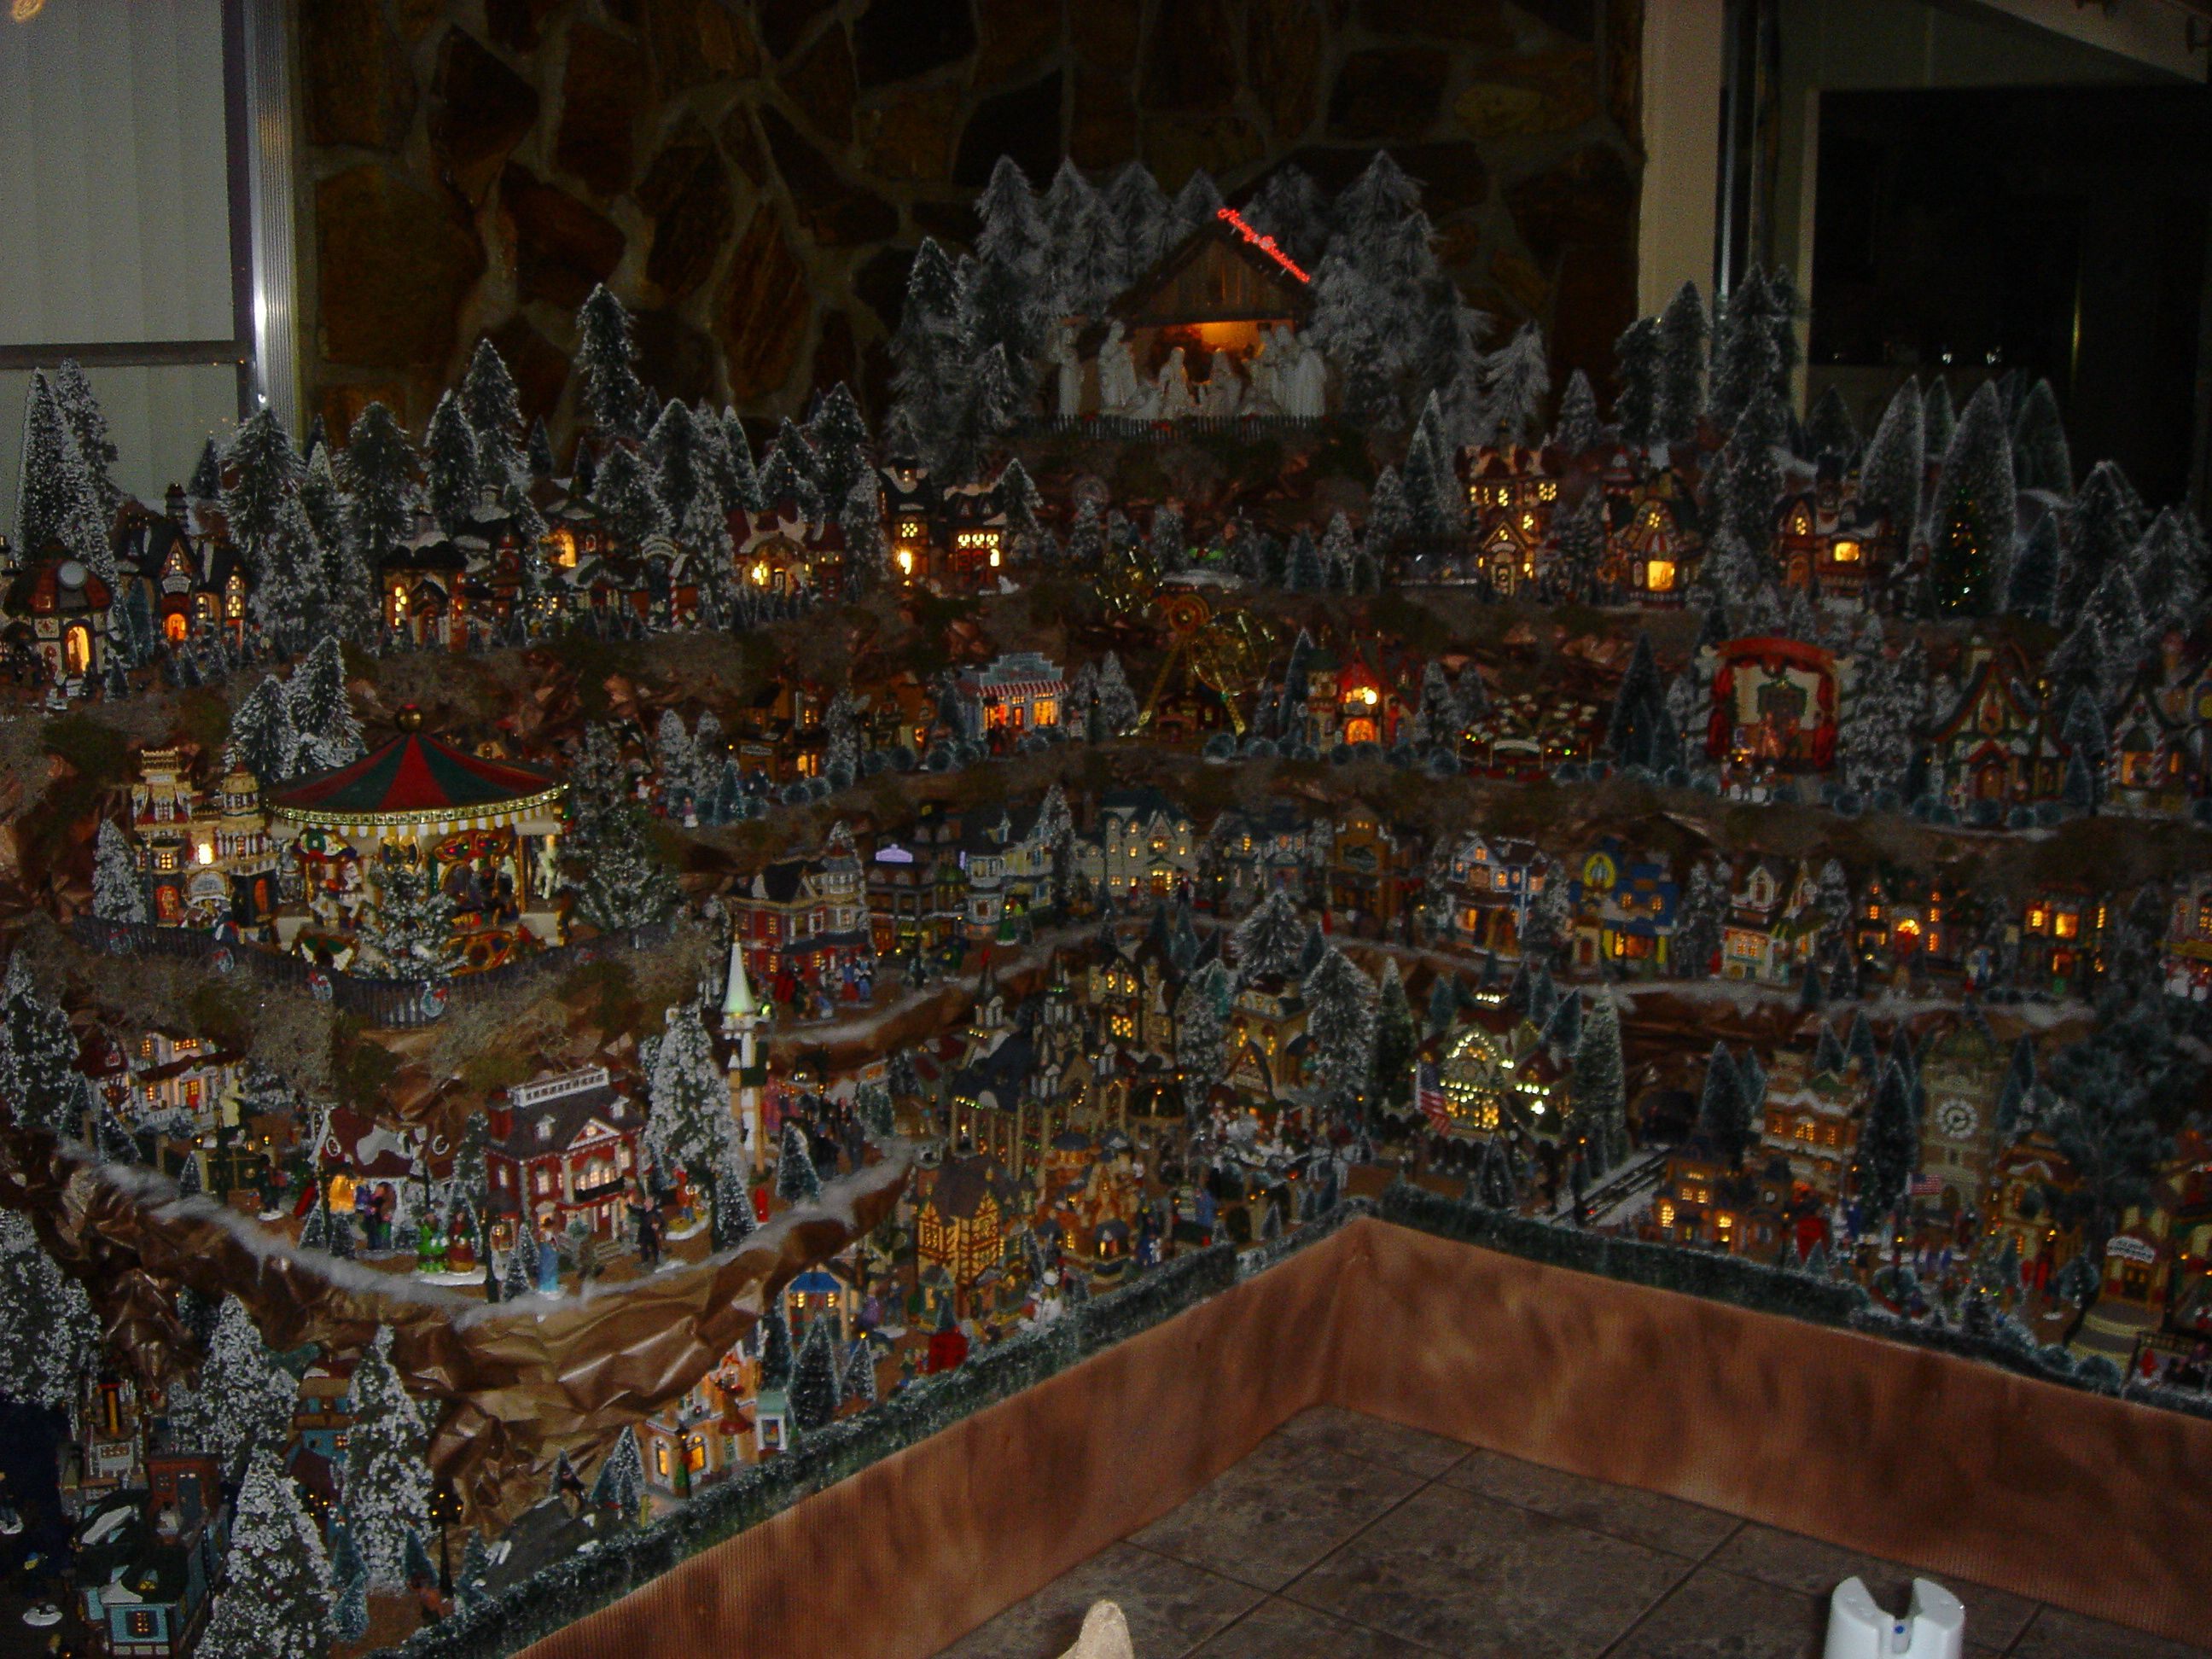 Large Christmas Village Display